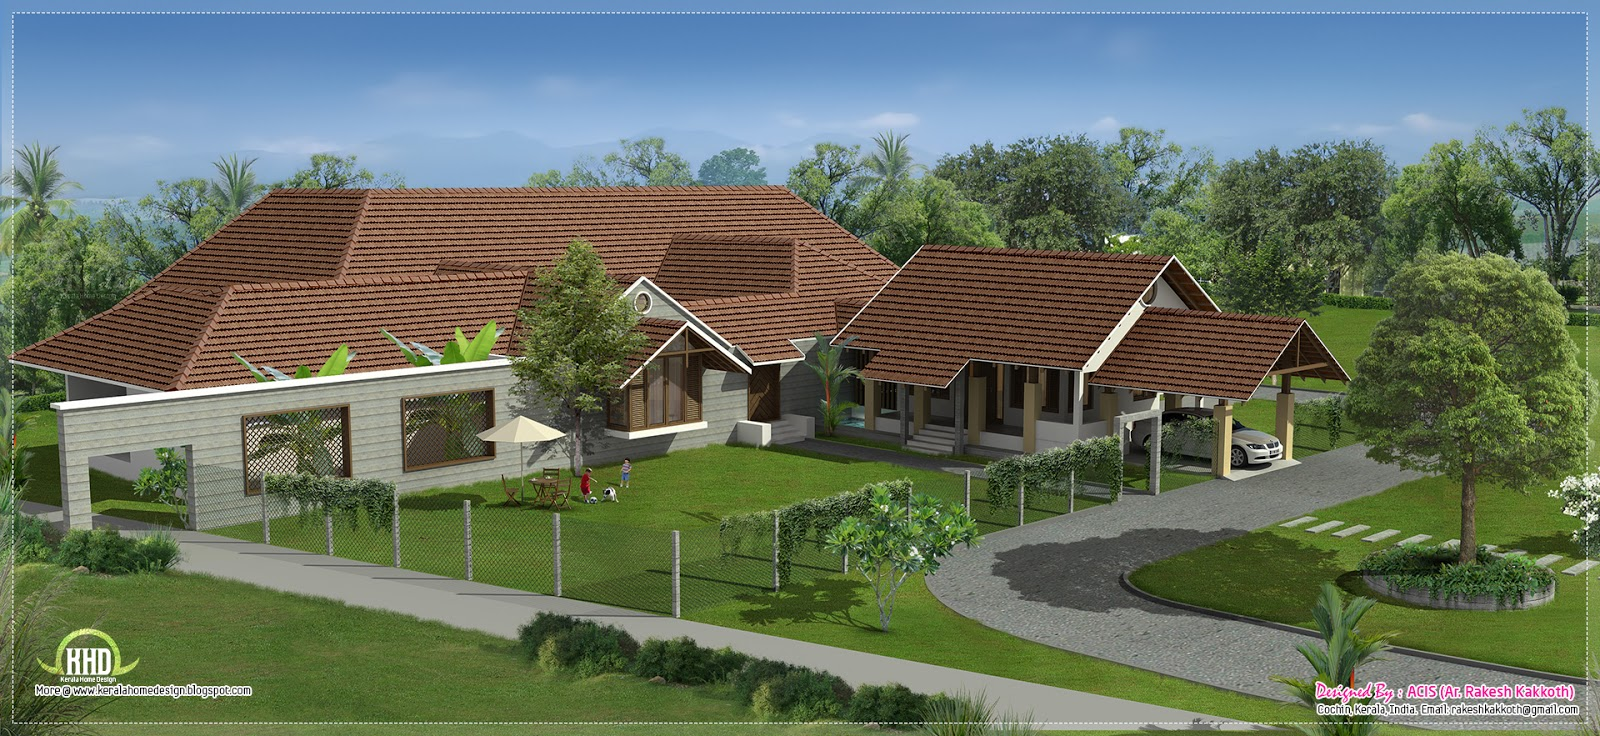 Luxury bungalow exterior design home kerala plans for Www bungalow design